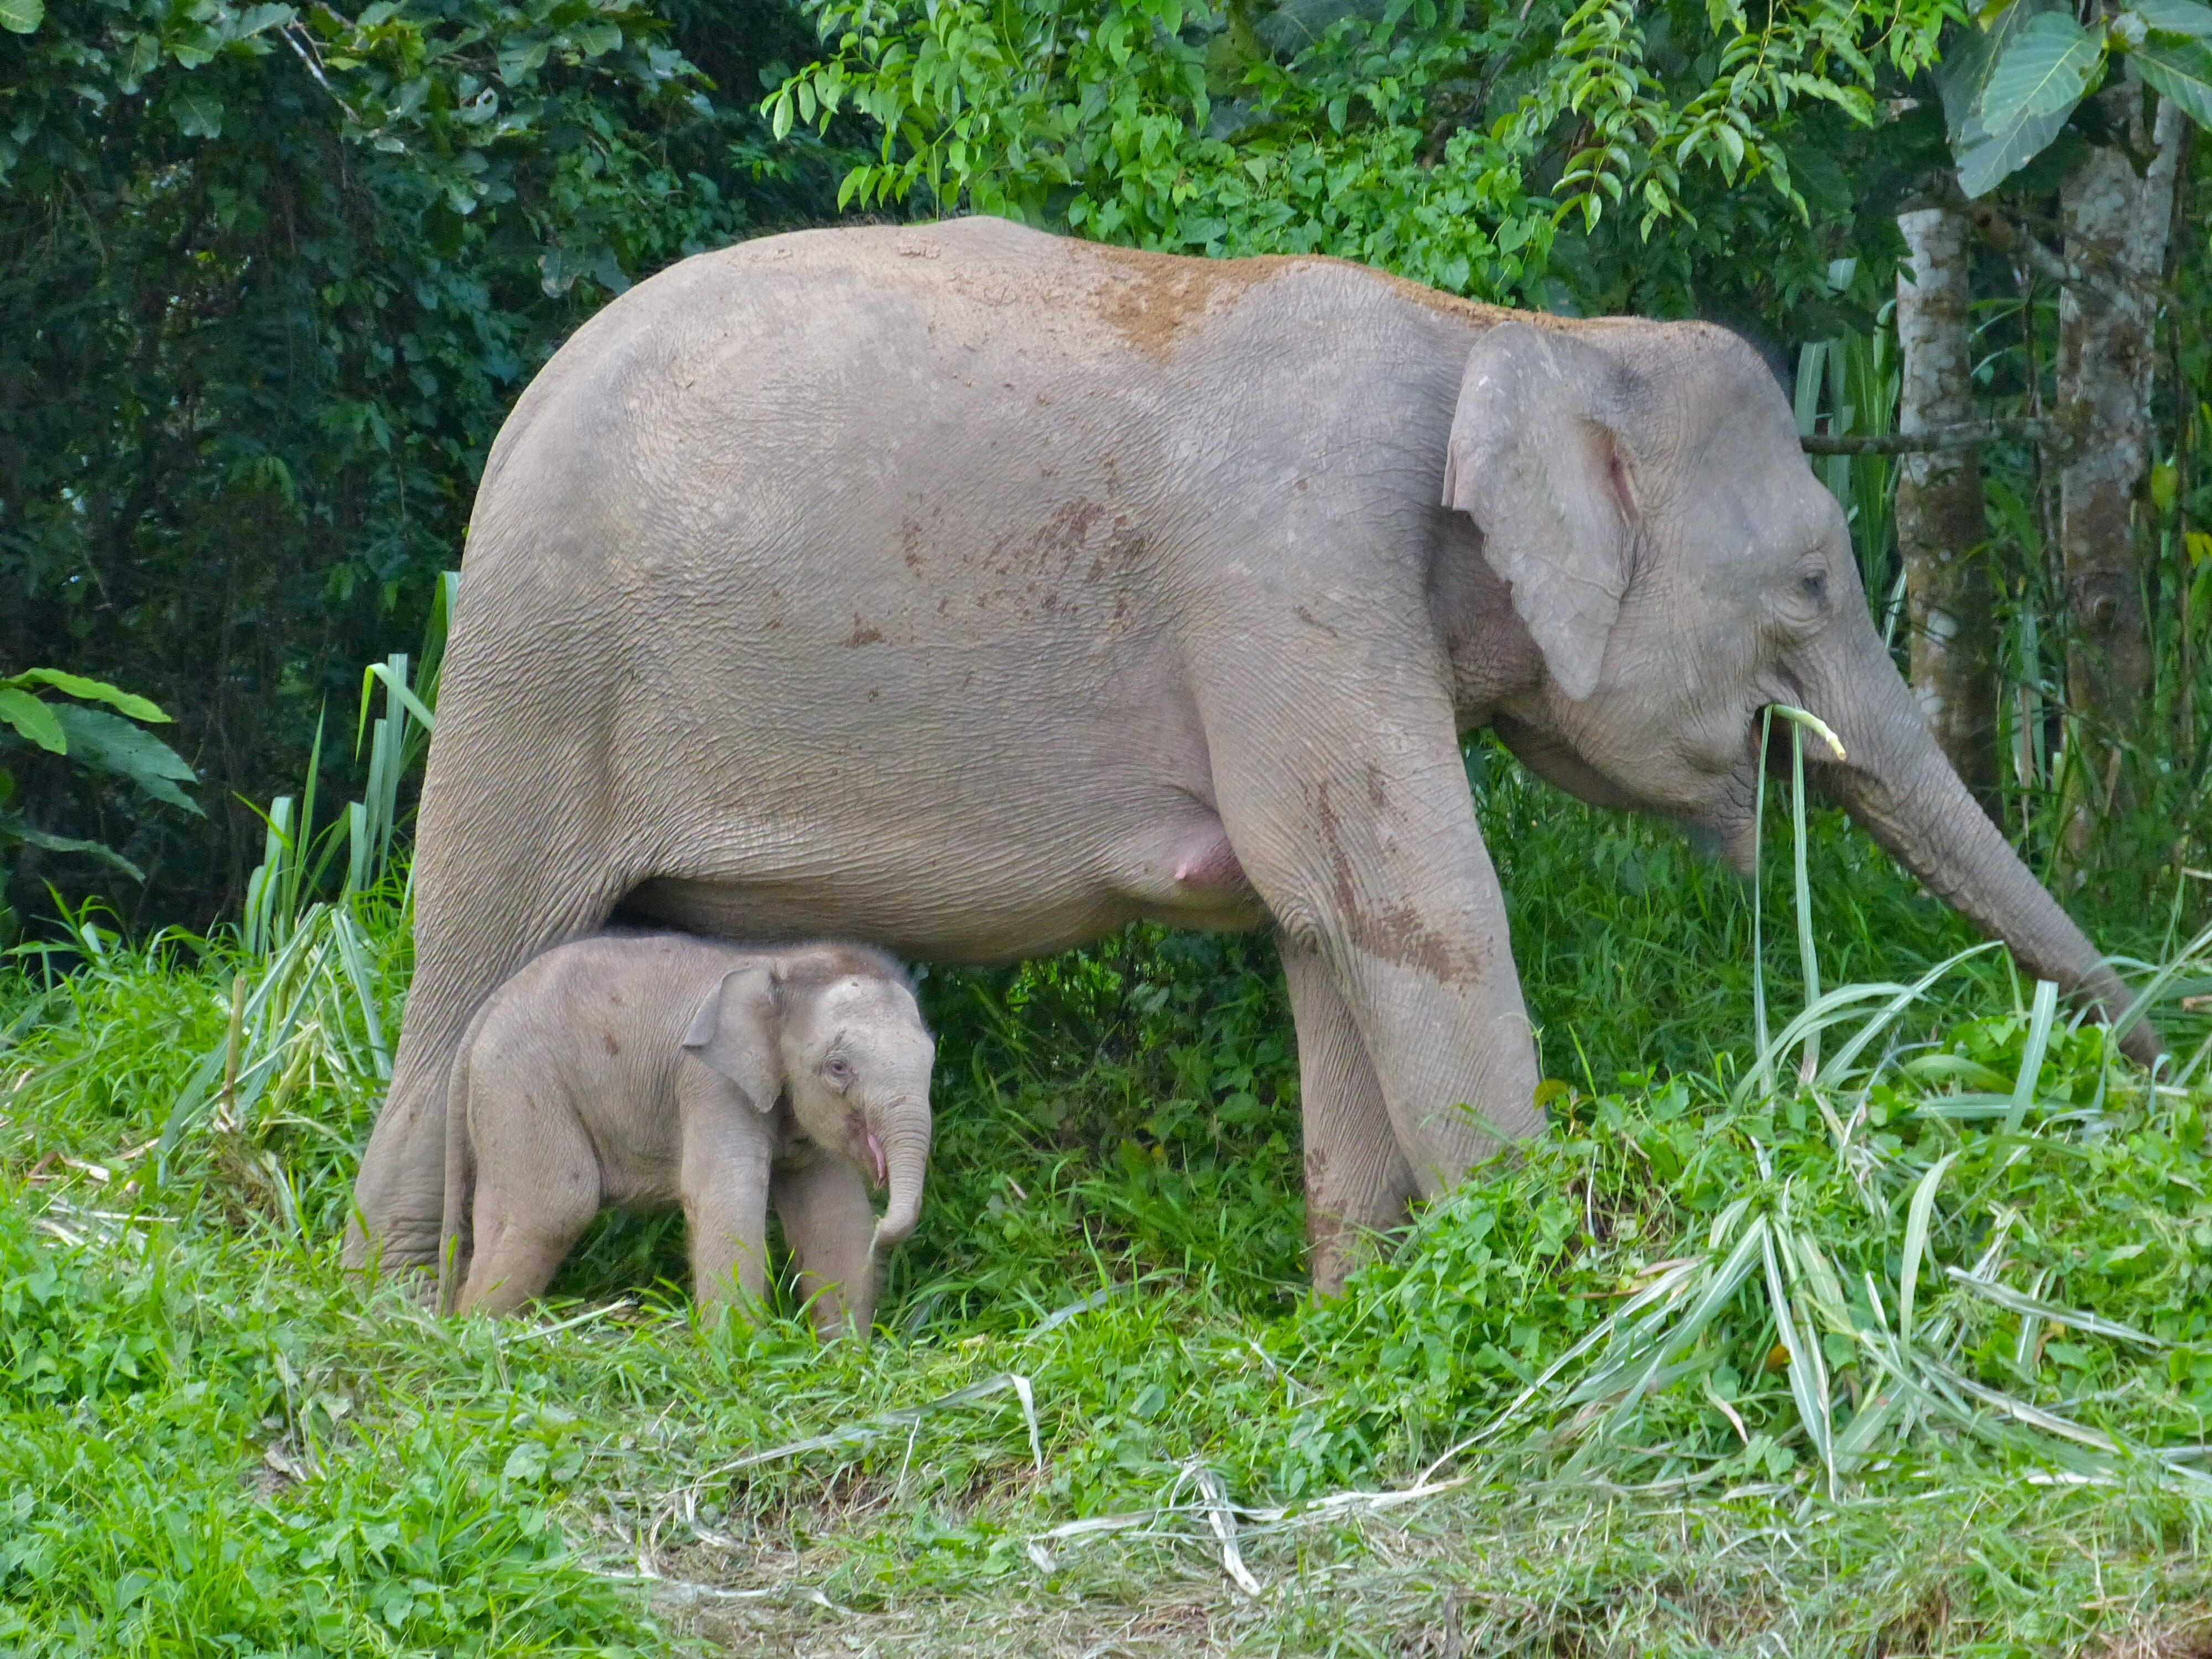 A female elephant with her calf. Unlike many elephants, these two are safe from the effects of war.